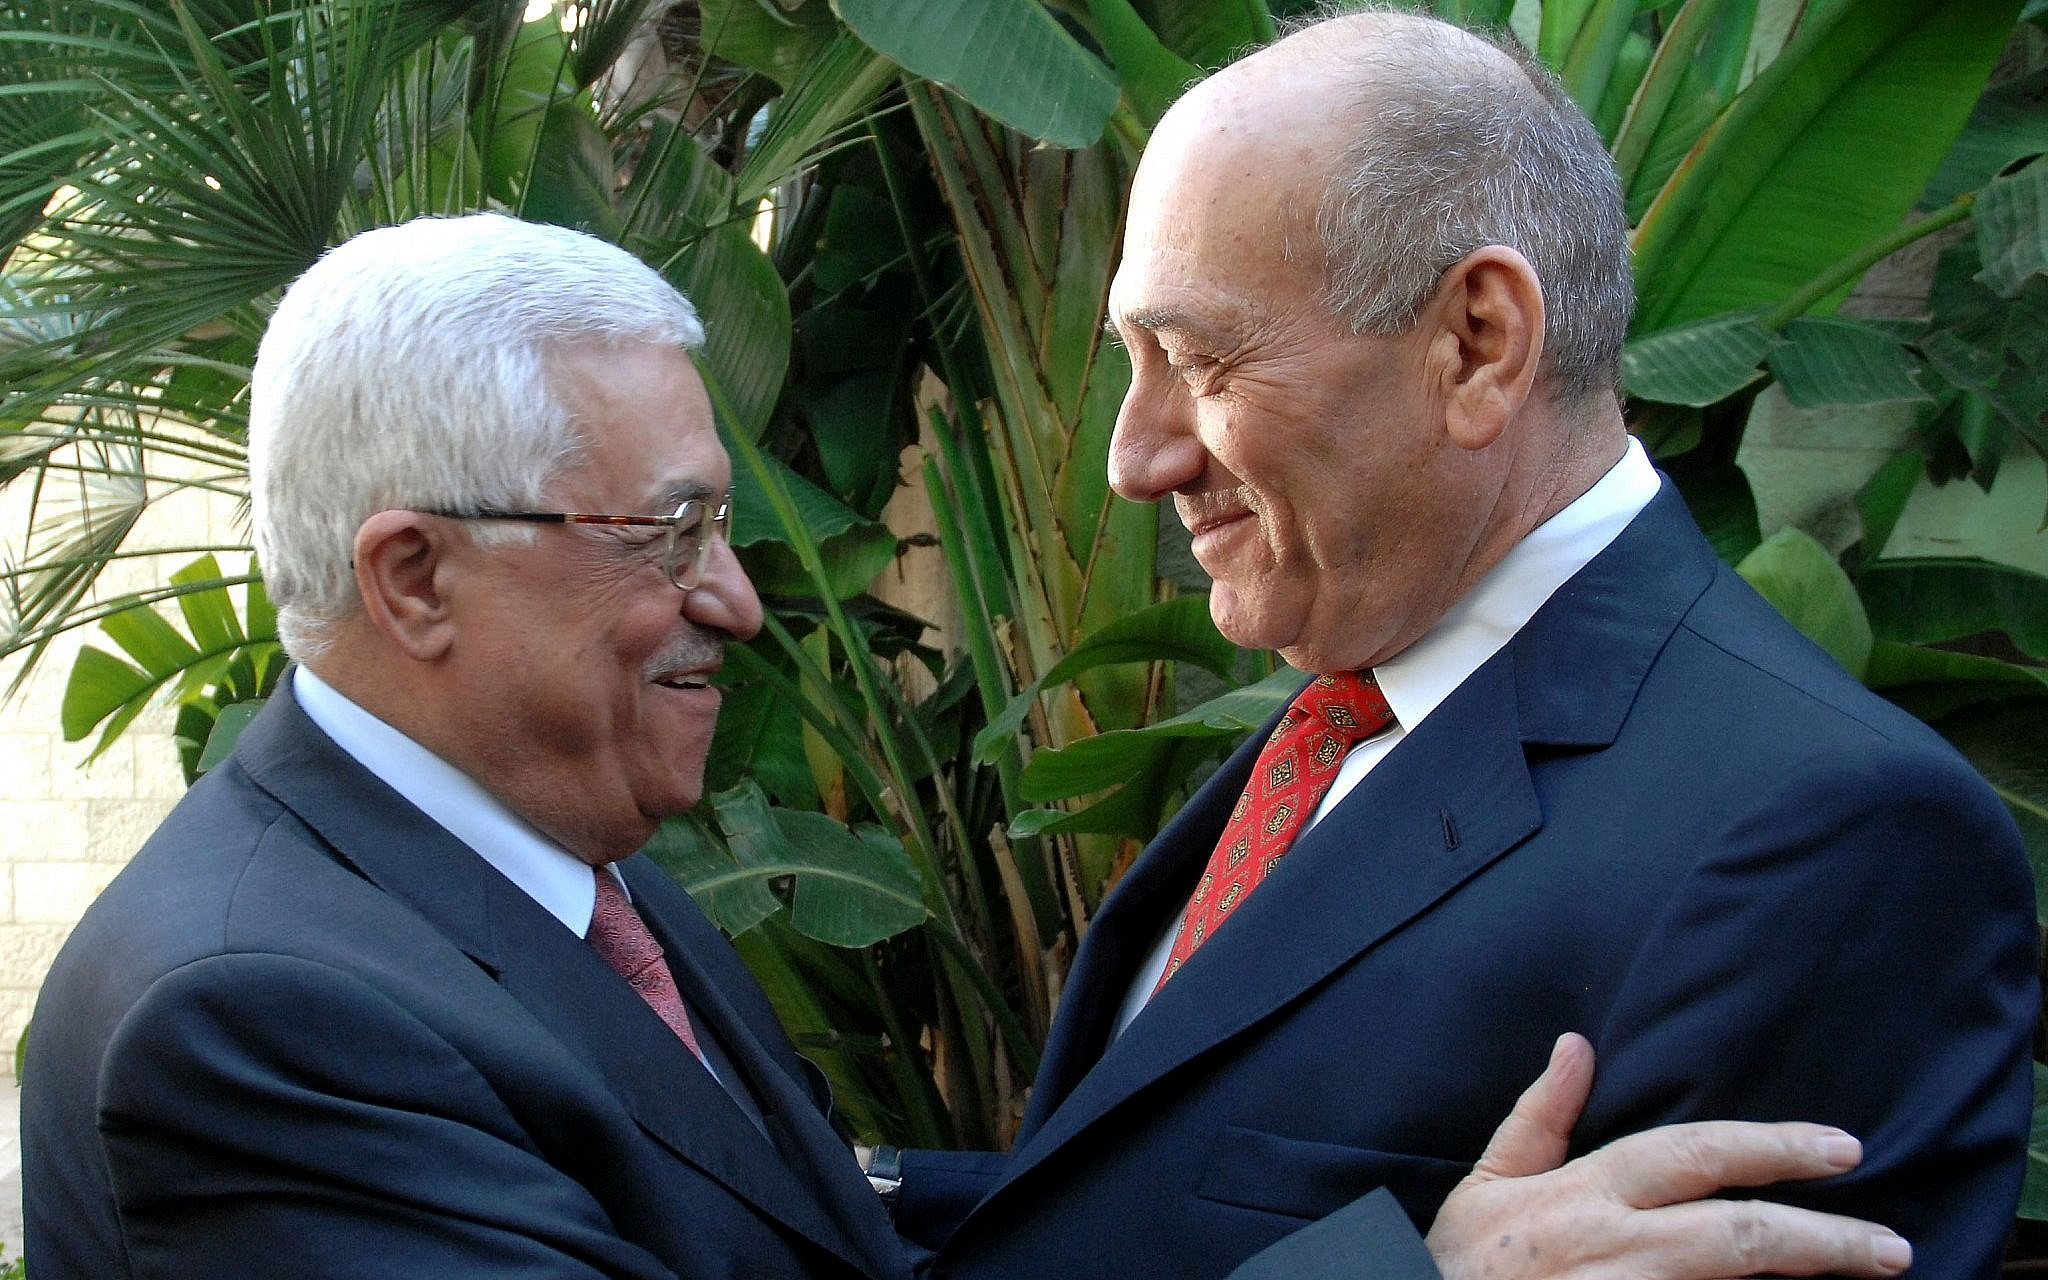 Then-Israeli PM Ehud Olmert meets with Palestinian President Mahmoud Abbas, in Jerusalem, on November 17, 2008. (Moshe Milner GPO/Flash90)